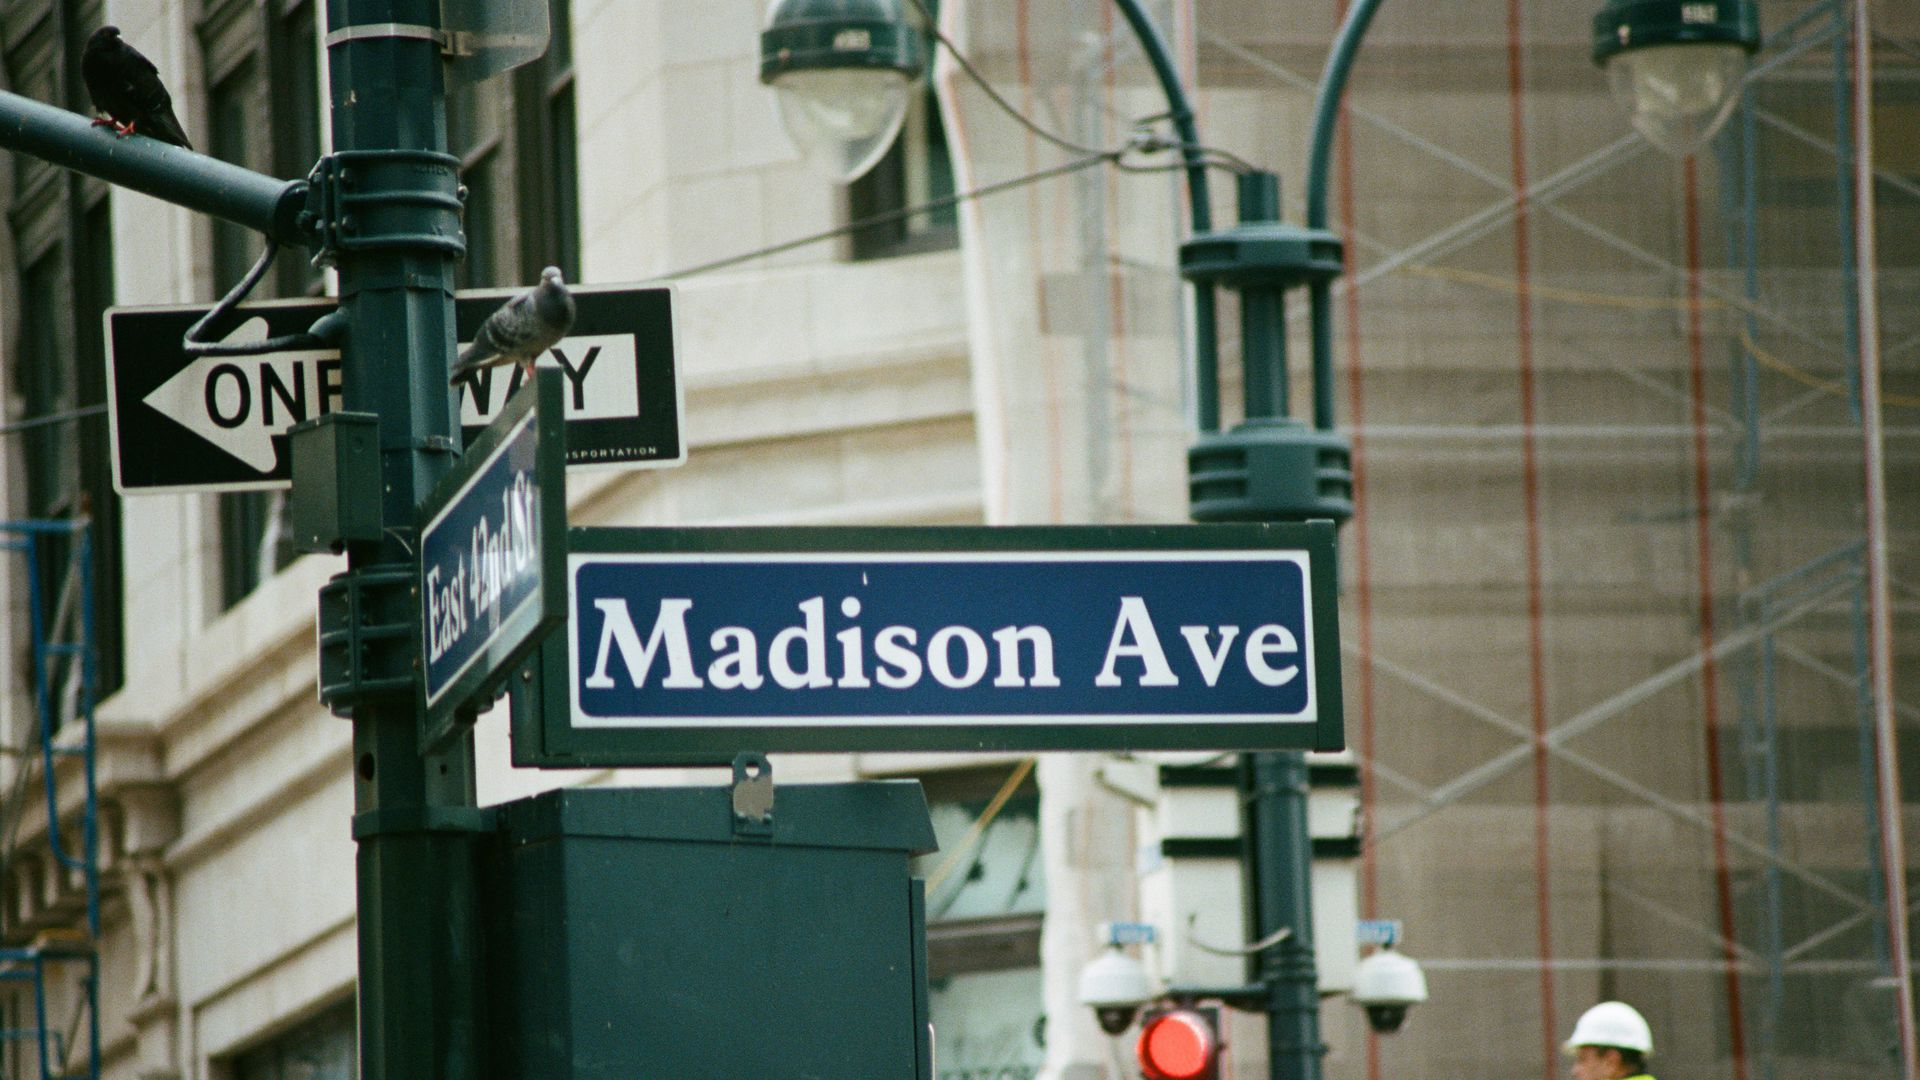 In this image, the street sign for Madison Avenue in New York is visible.